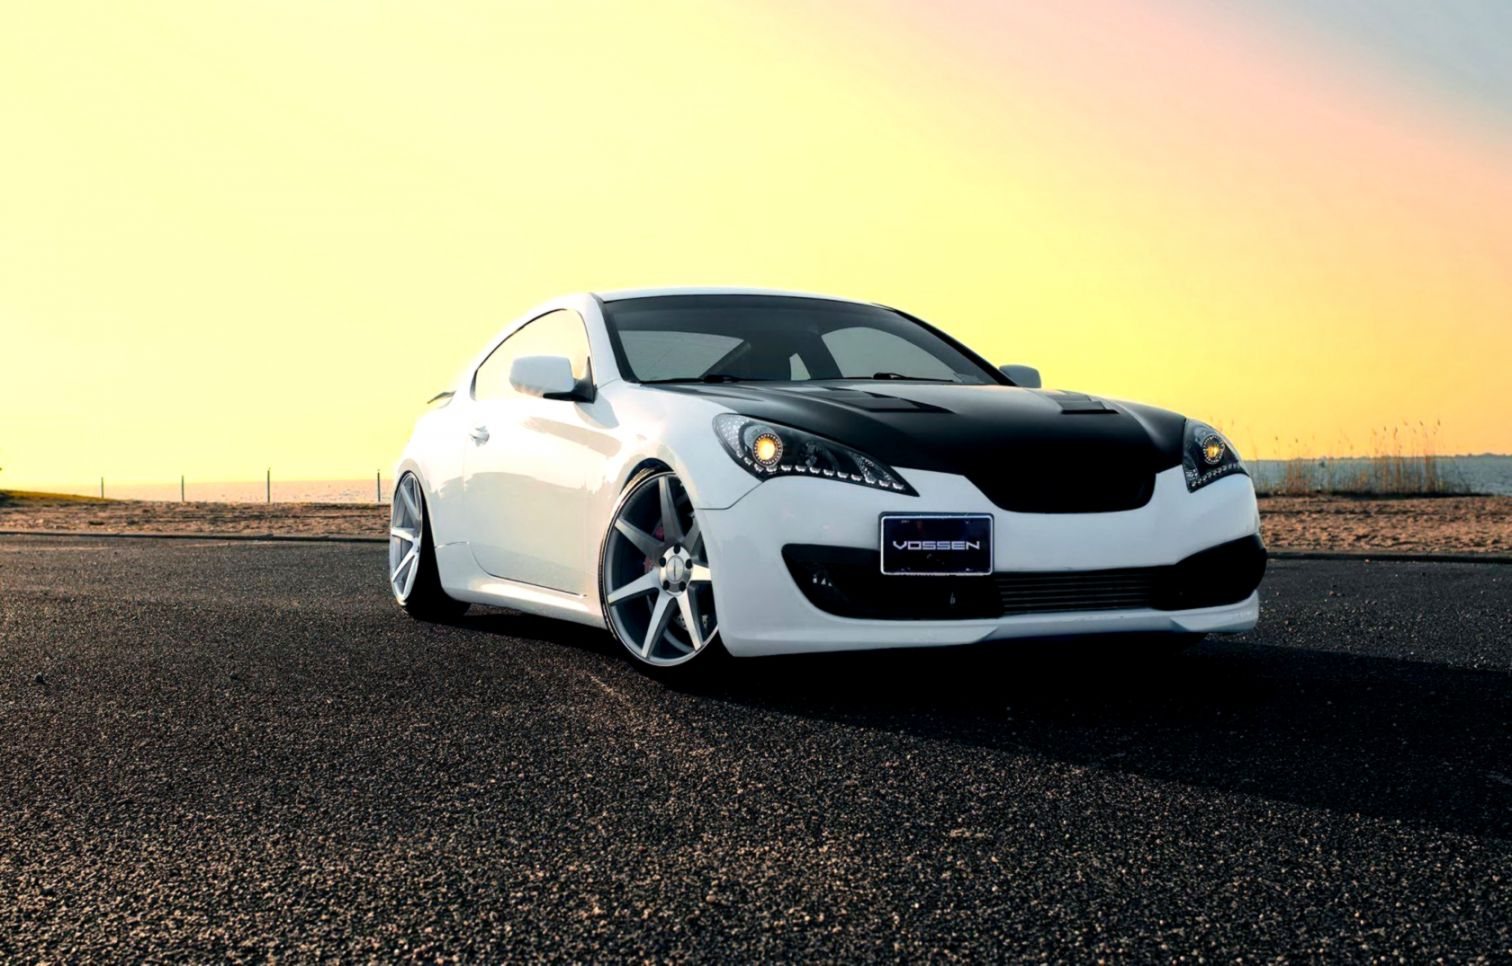 wallpapers bmw wallpapers cars wallpapers custom wallpapers tuned [ 1512 x 966 Pixel ]